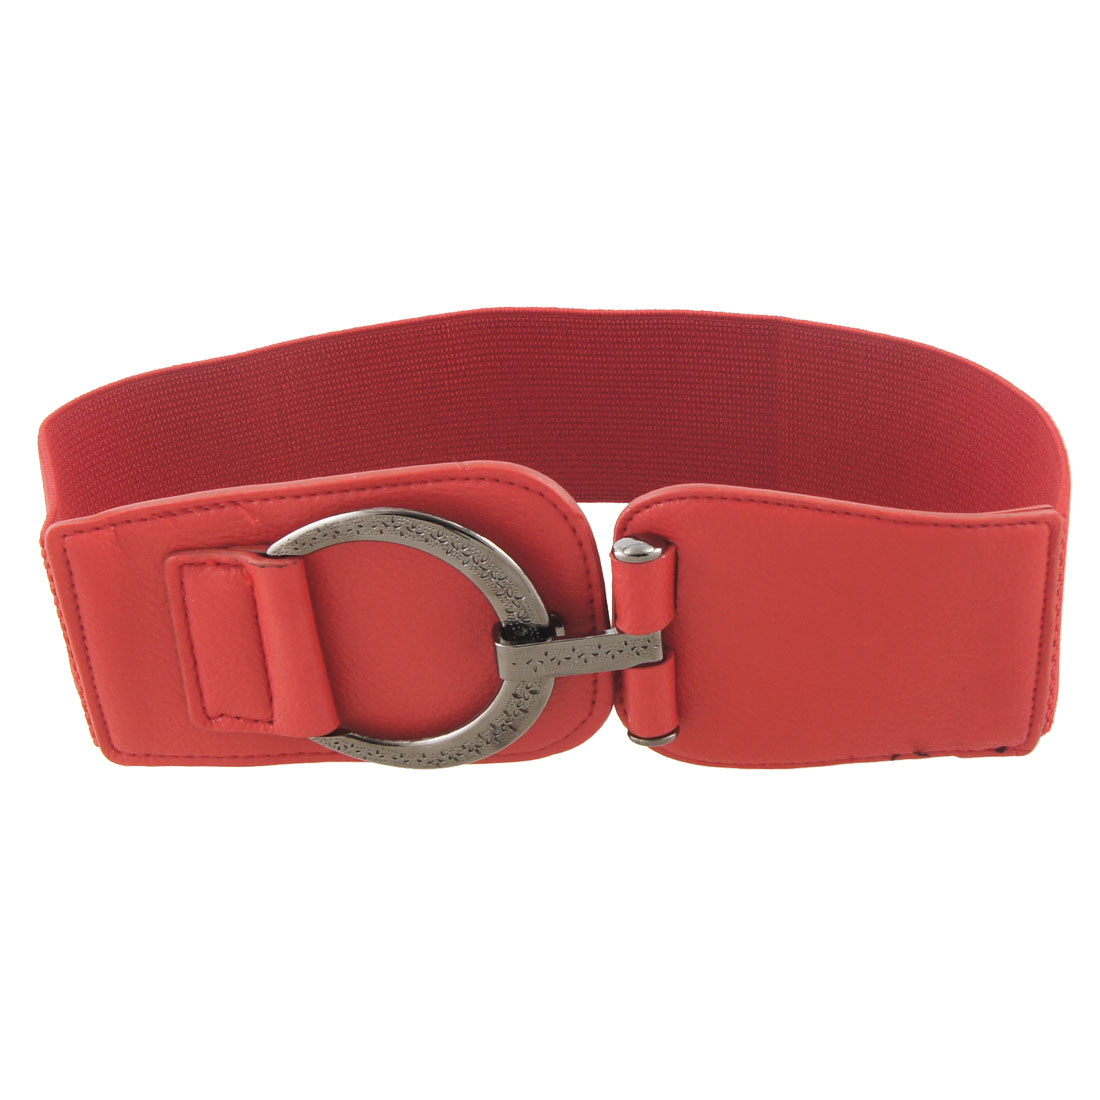 "Ladies D Shape Metal Buckle 2.4"" Width Red Elastic Cinch Belt"